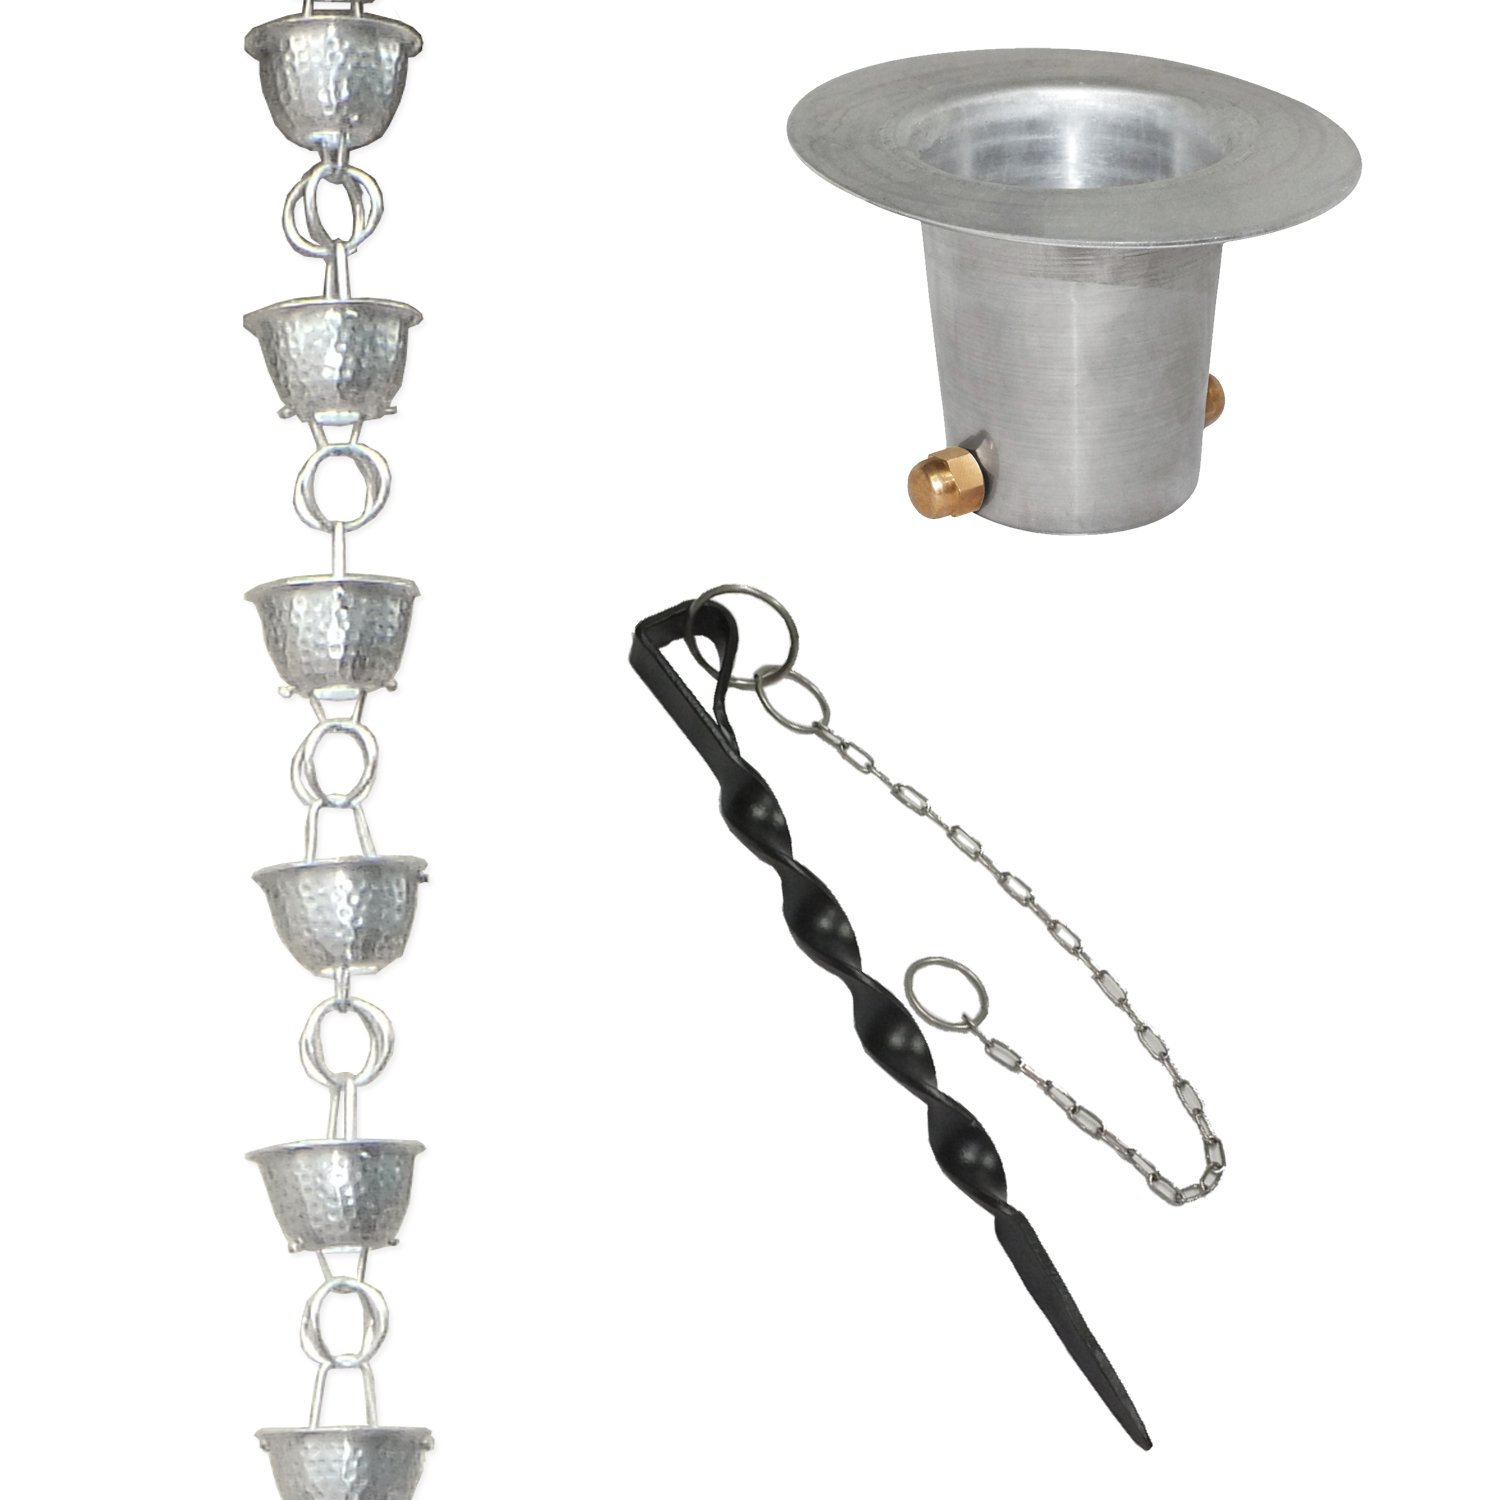 Monarch Aluminum Hammered Cup Rain Chain (Mill Finish) with Anchoring Stake and Gutter Reducer for Installation